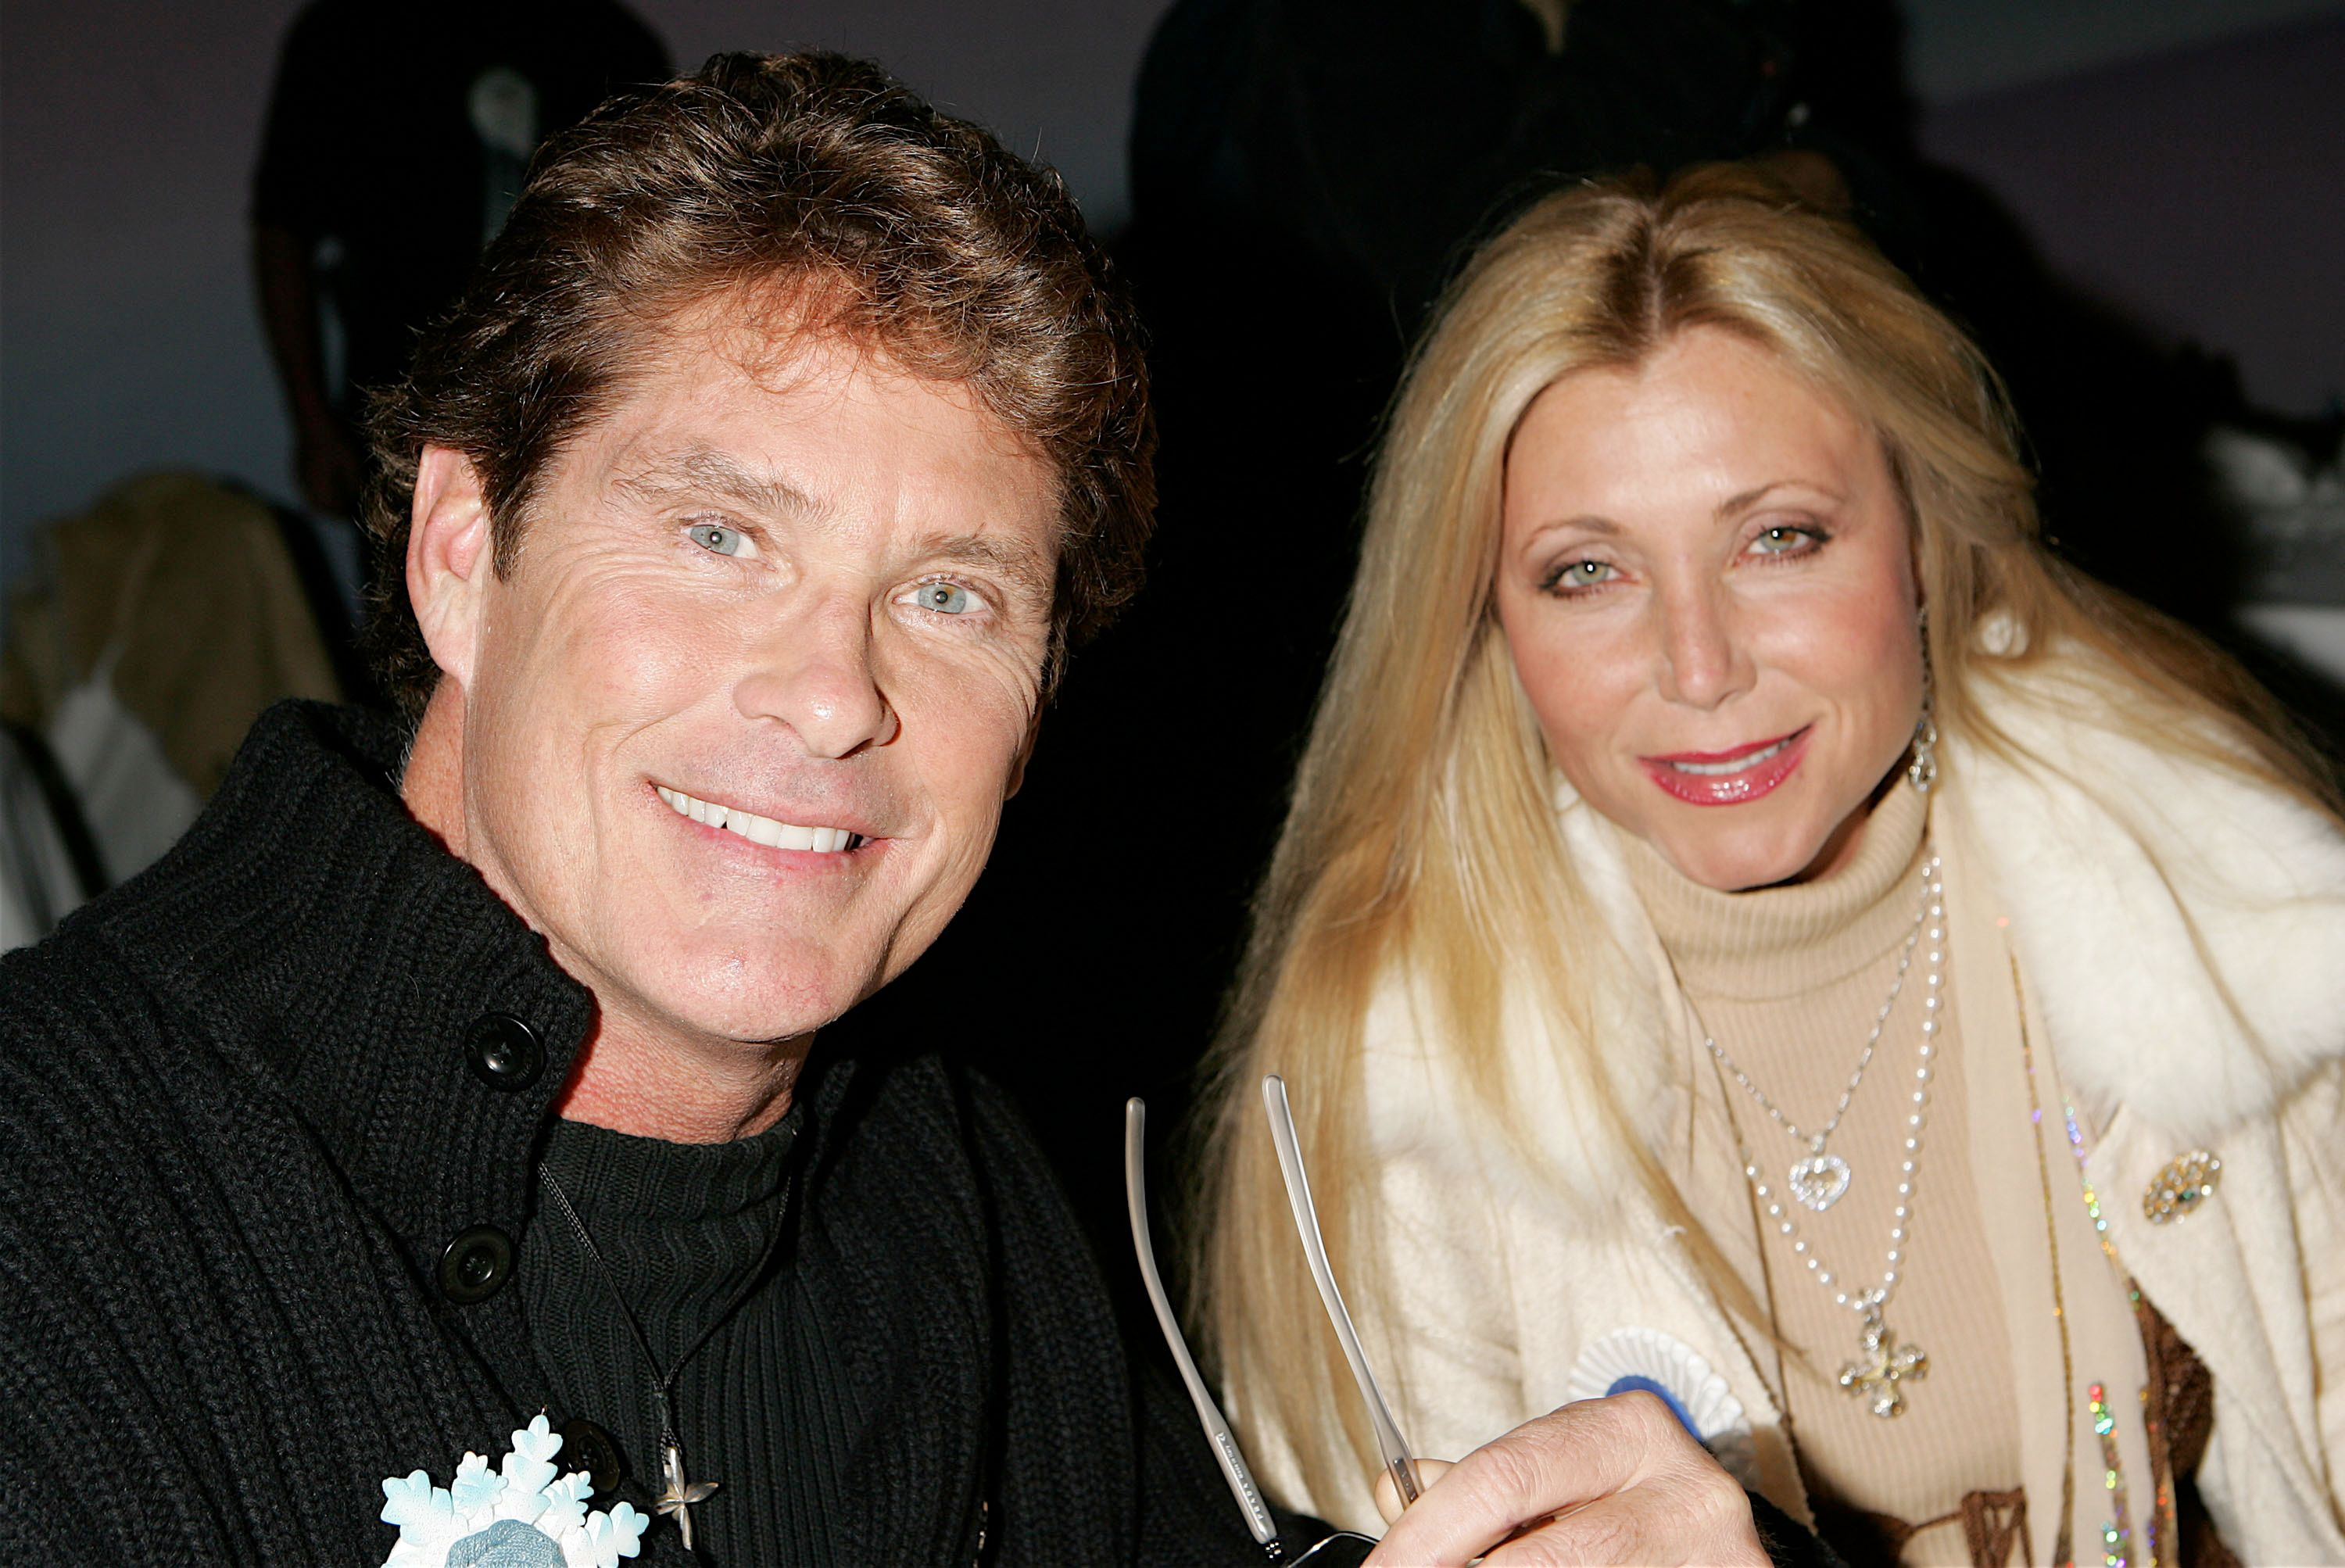 David Hasselhoff and Pamela Bach-Hasselhoff at the 2005 Hollywood Christmas Parade | Source: Getty Images